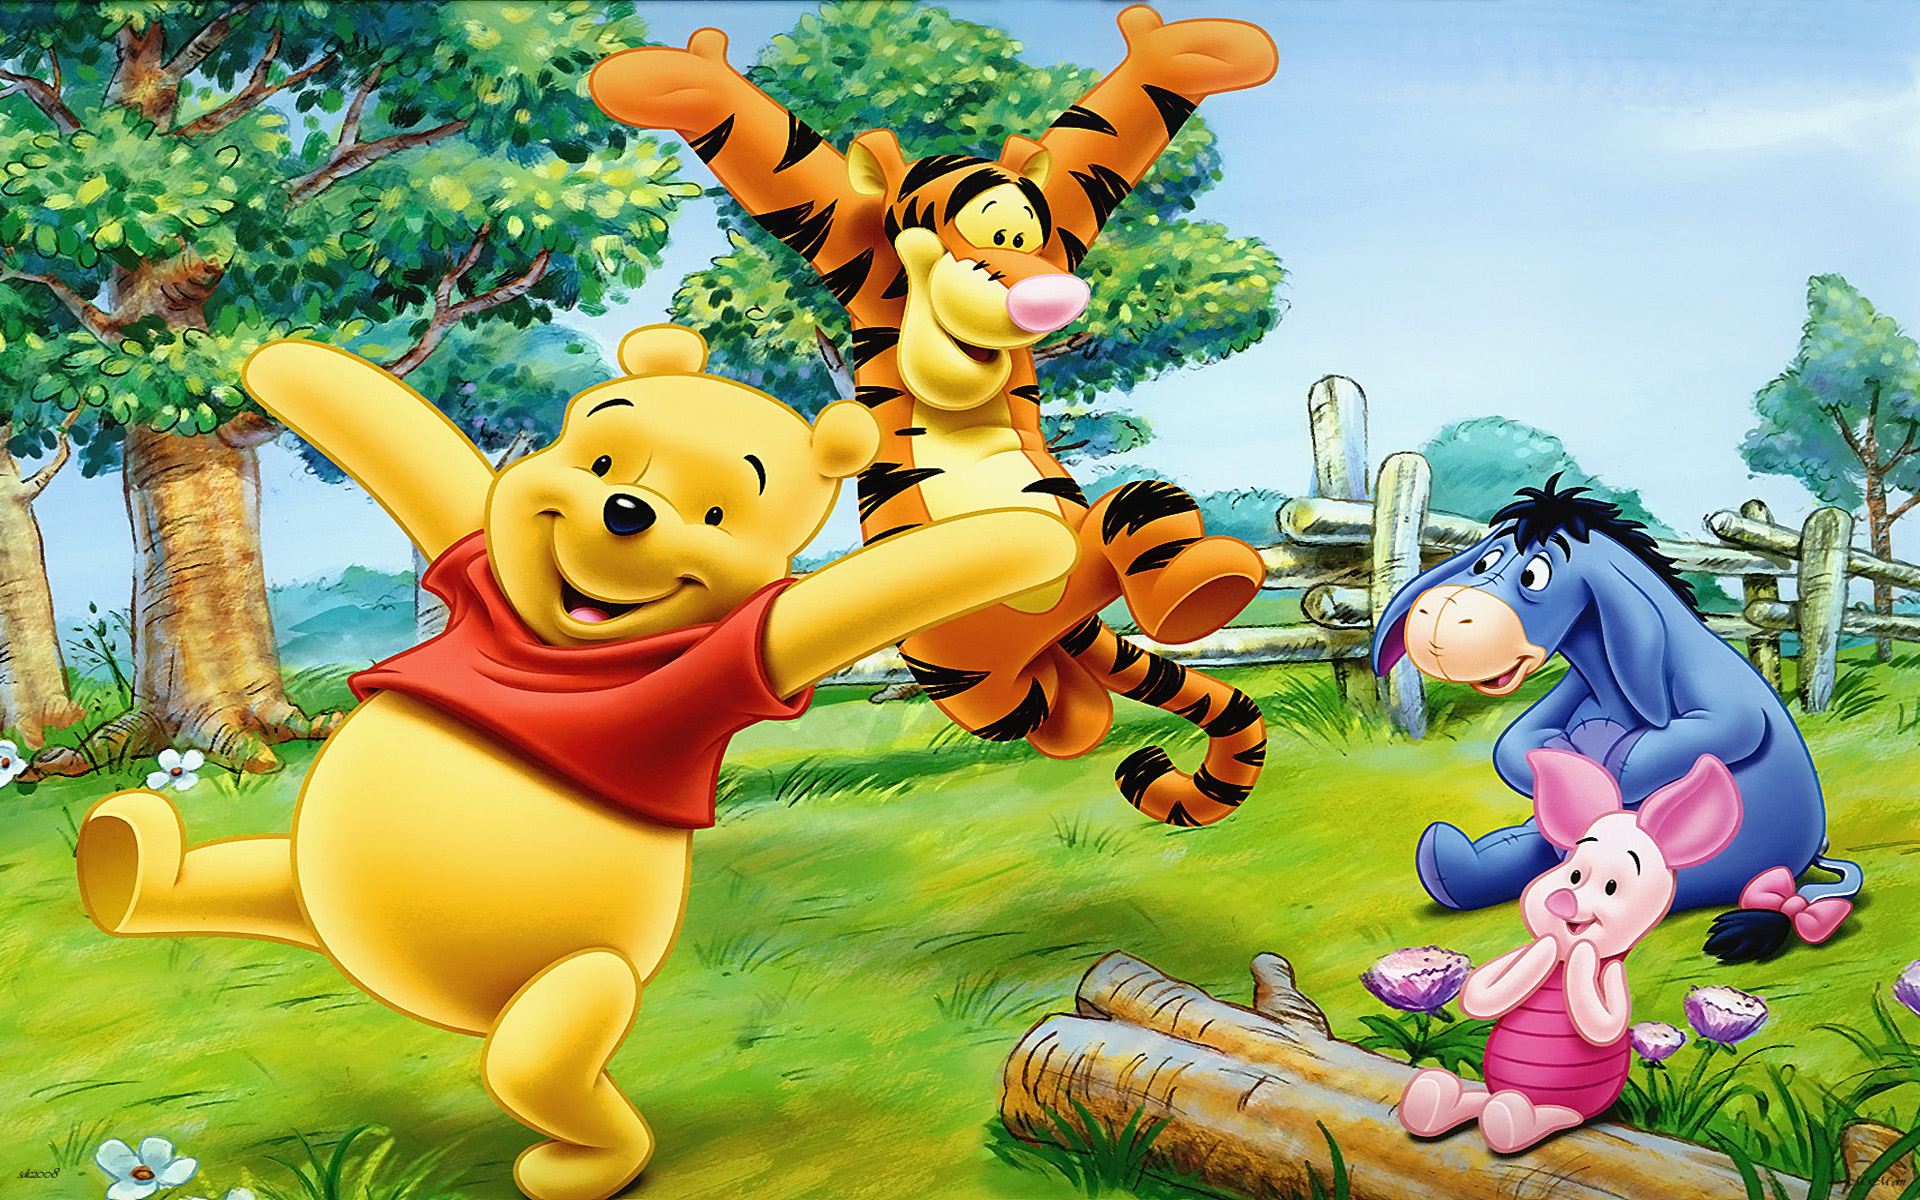 Desktop Wallpaper Hd 3d Full Screen Baby Cartoon Tigger Piglet And Winnie The Pooh Happy And